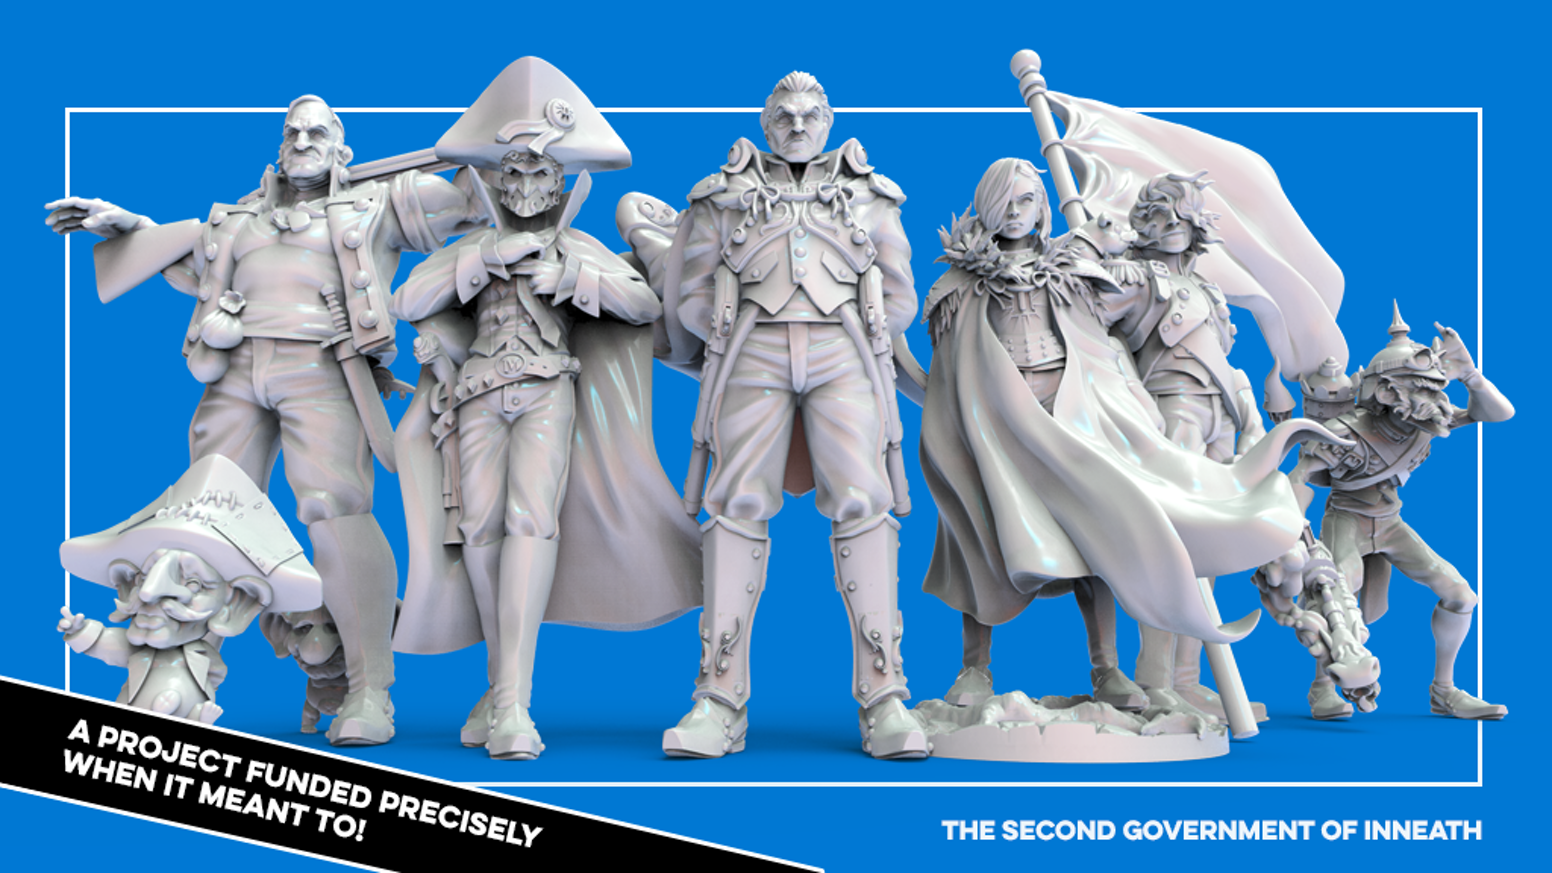 Is it possible to sculpt a range of 32mm miniatures worthy of the greatest nation of Inneath? We're here to figure it out!